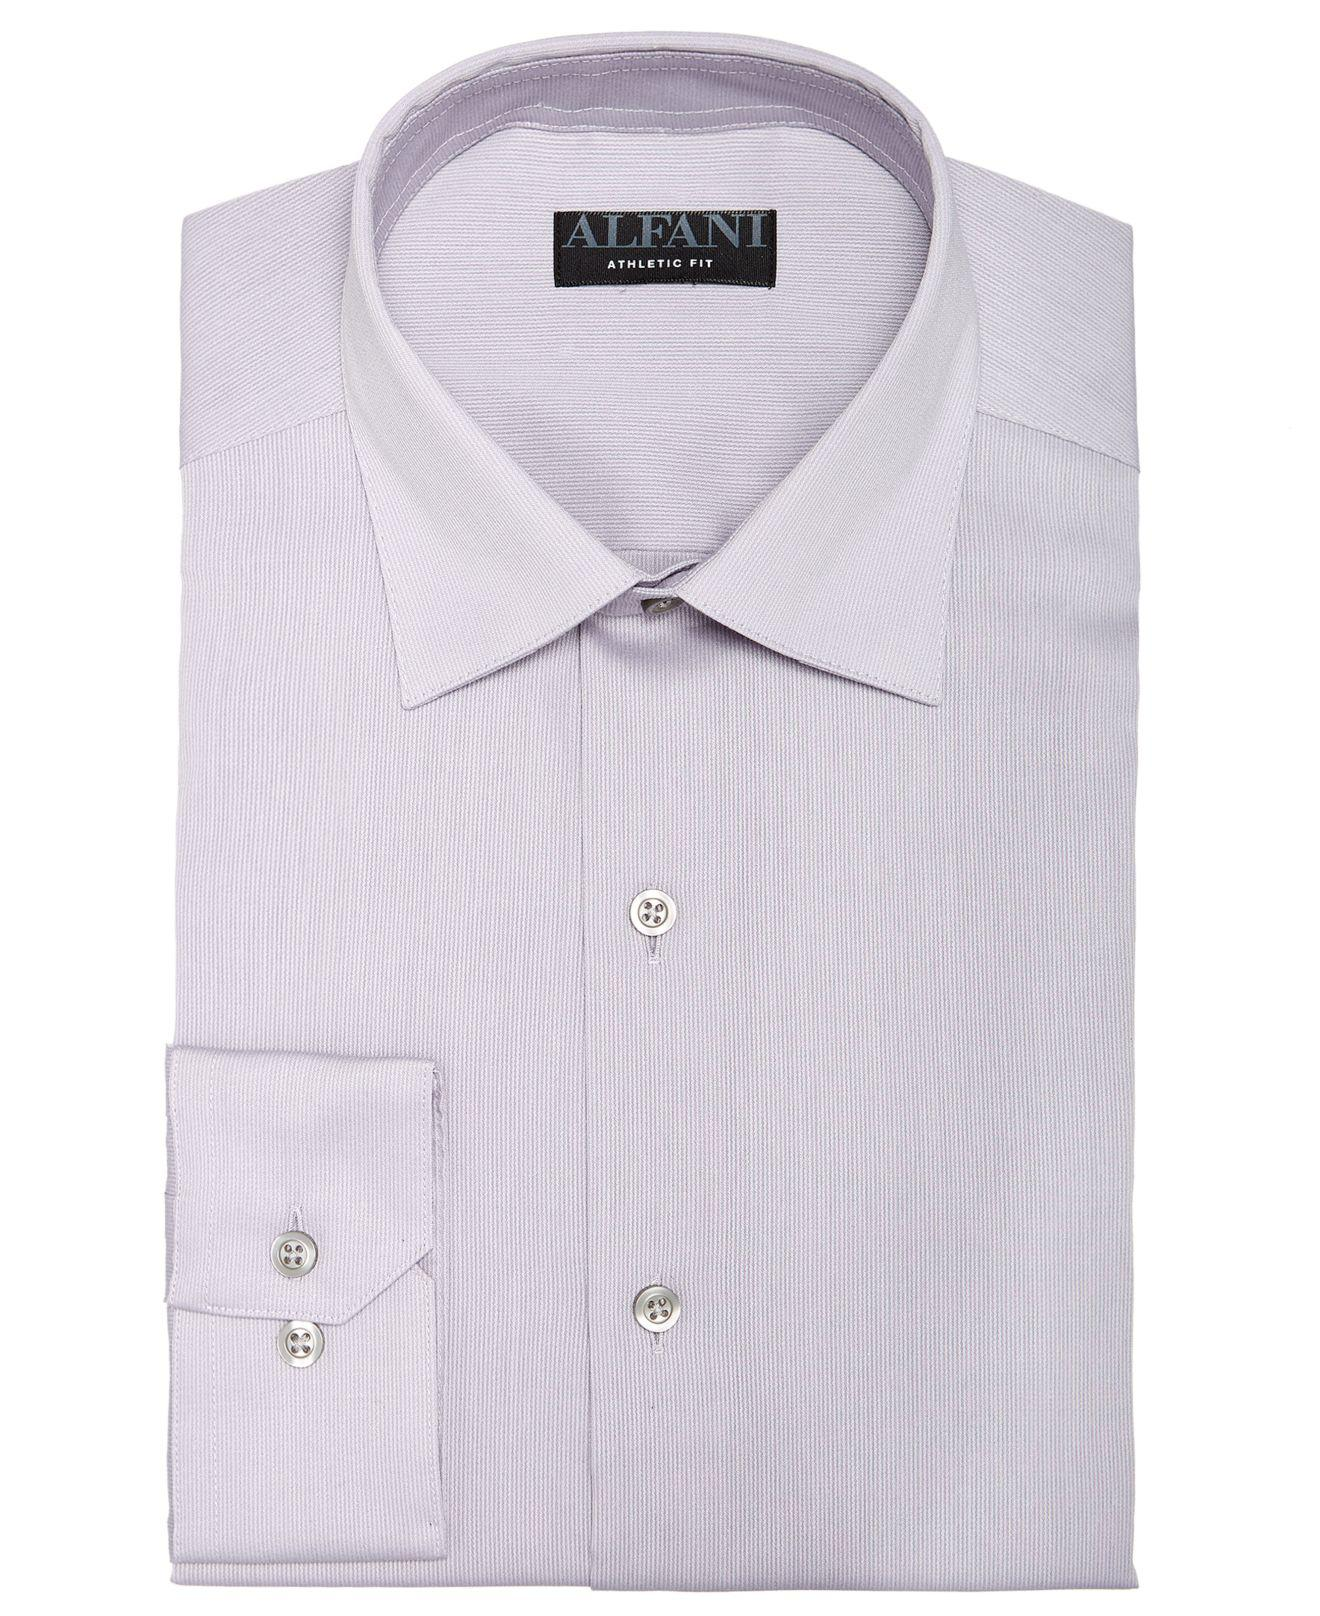 Lyst Alfani Athletic Fit Bedford Cord Dress Shirt Created For